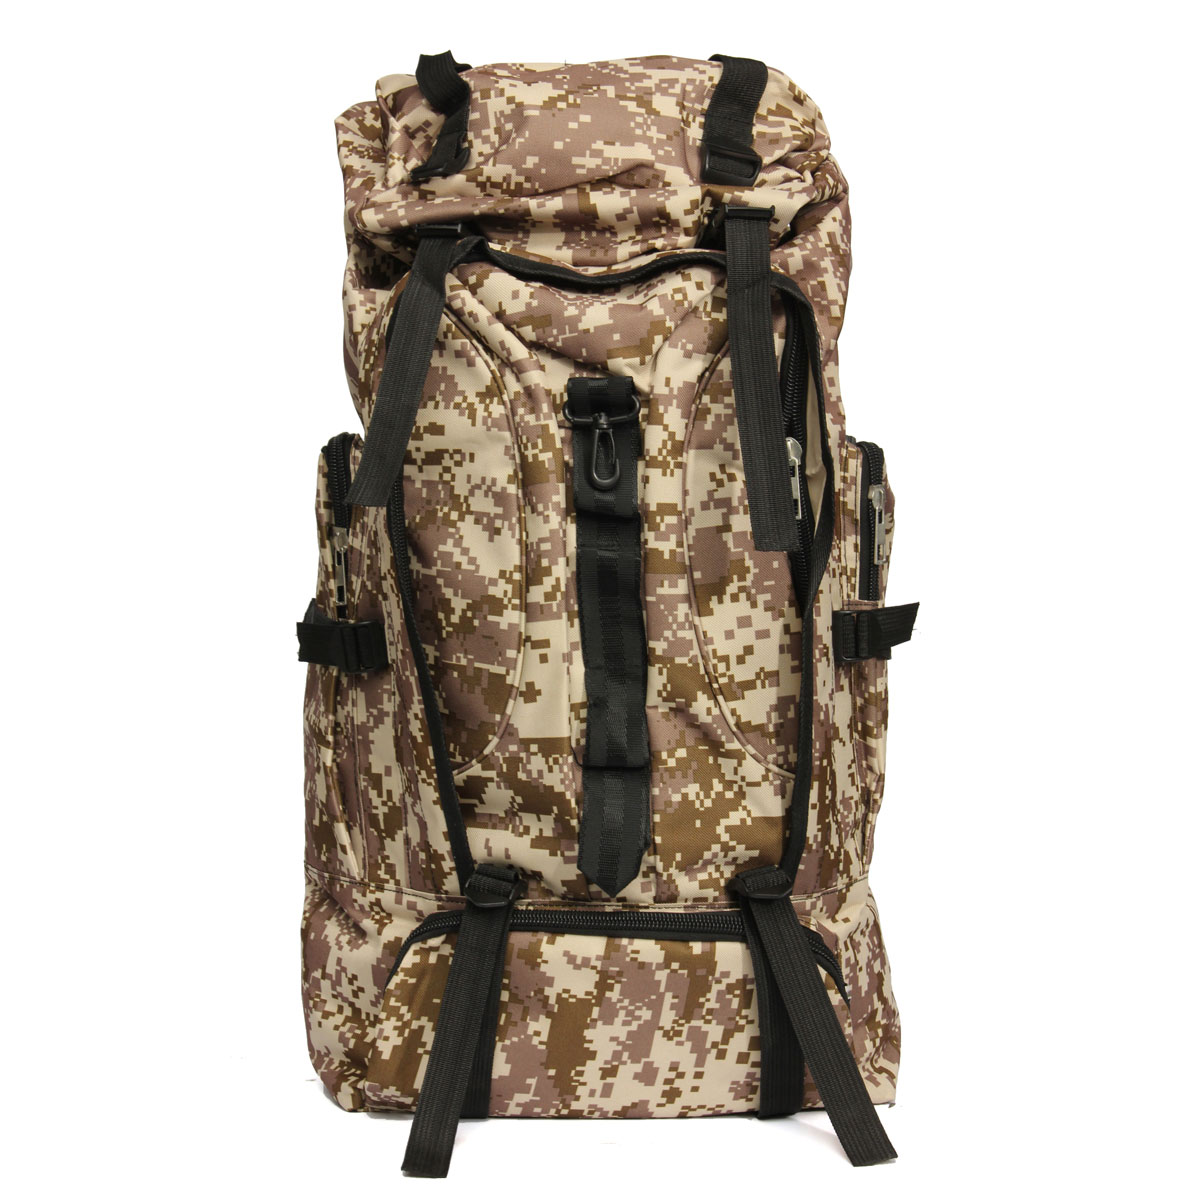 80L Outdoor Tactical Bag Climbing Backpack Waterproof Sports Travel Hiking Camping Rucksack